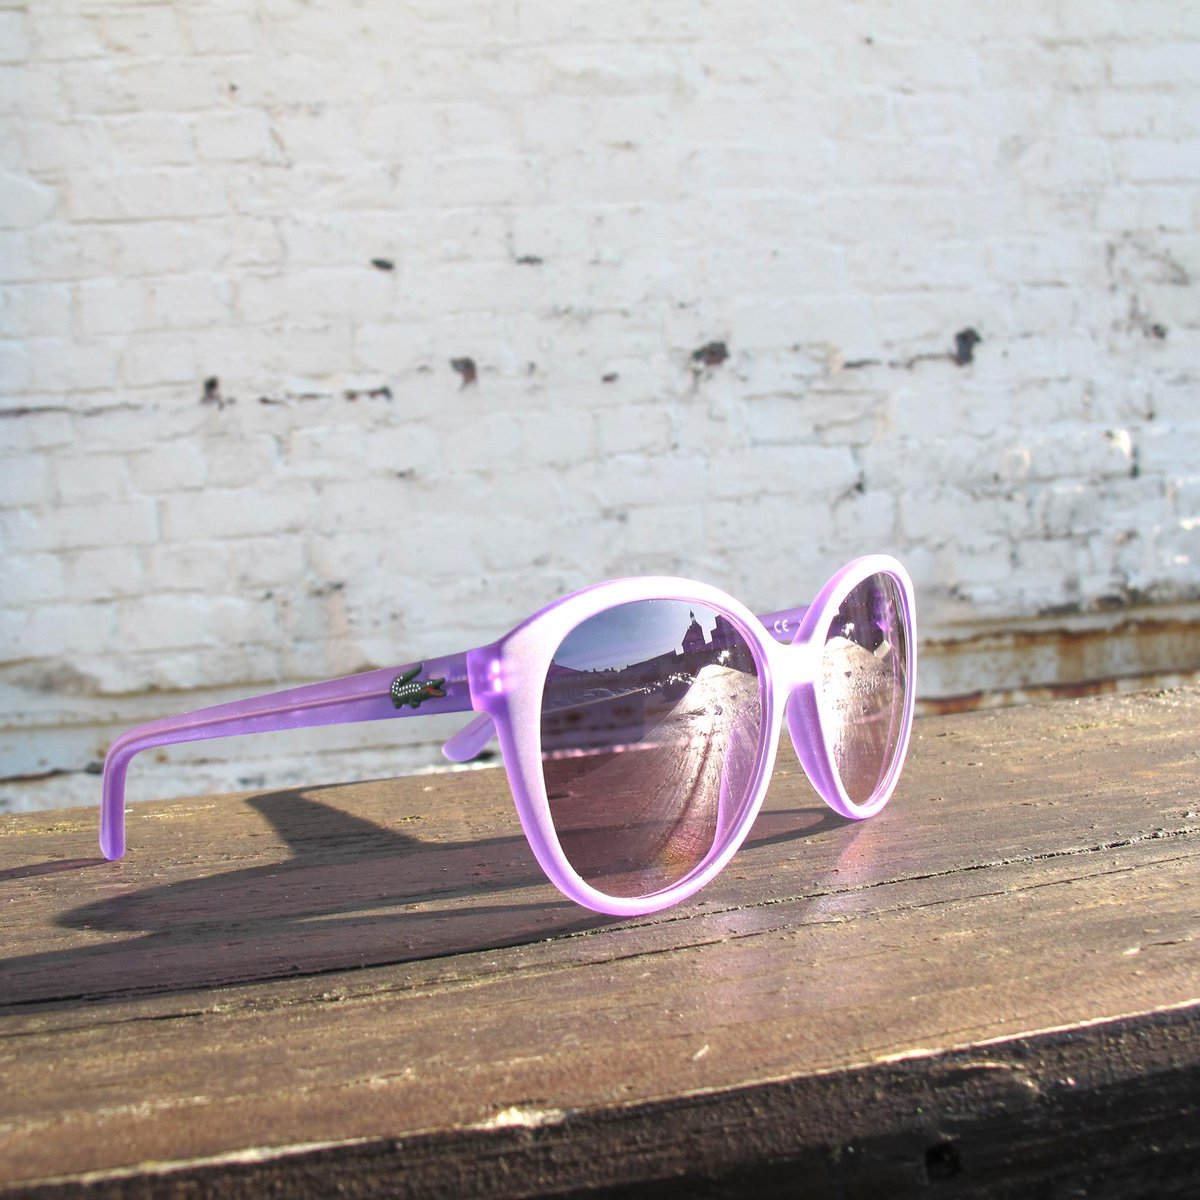 1af2445d8eb0  POTD Lacoste Kids Childrens Cateye Sunglasses in Purple  http   ow.ly 1zhH30iqevM  lacoste  kidssunglasses  kidsfashion   redhotsunglasses  sunglasses  wiwt ...